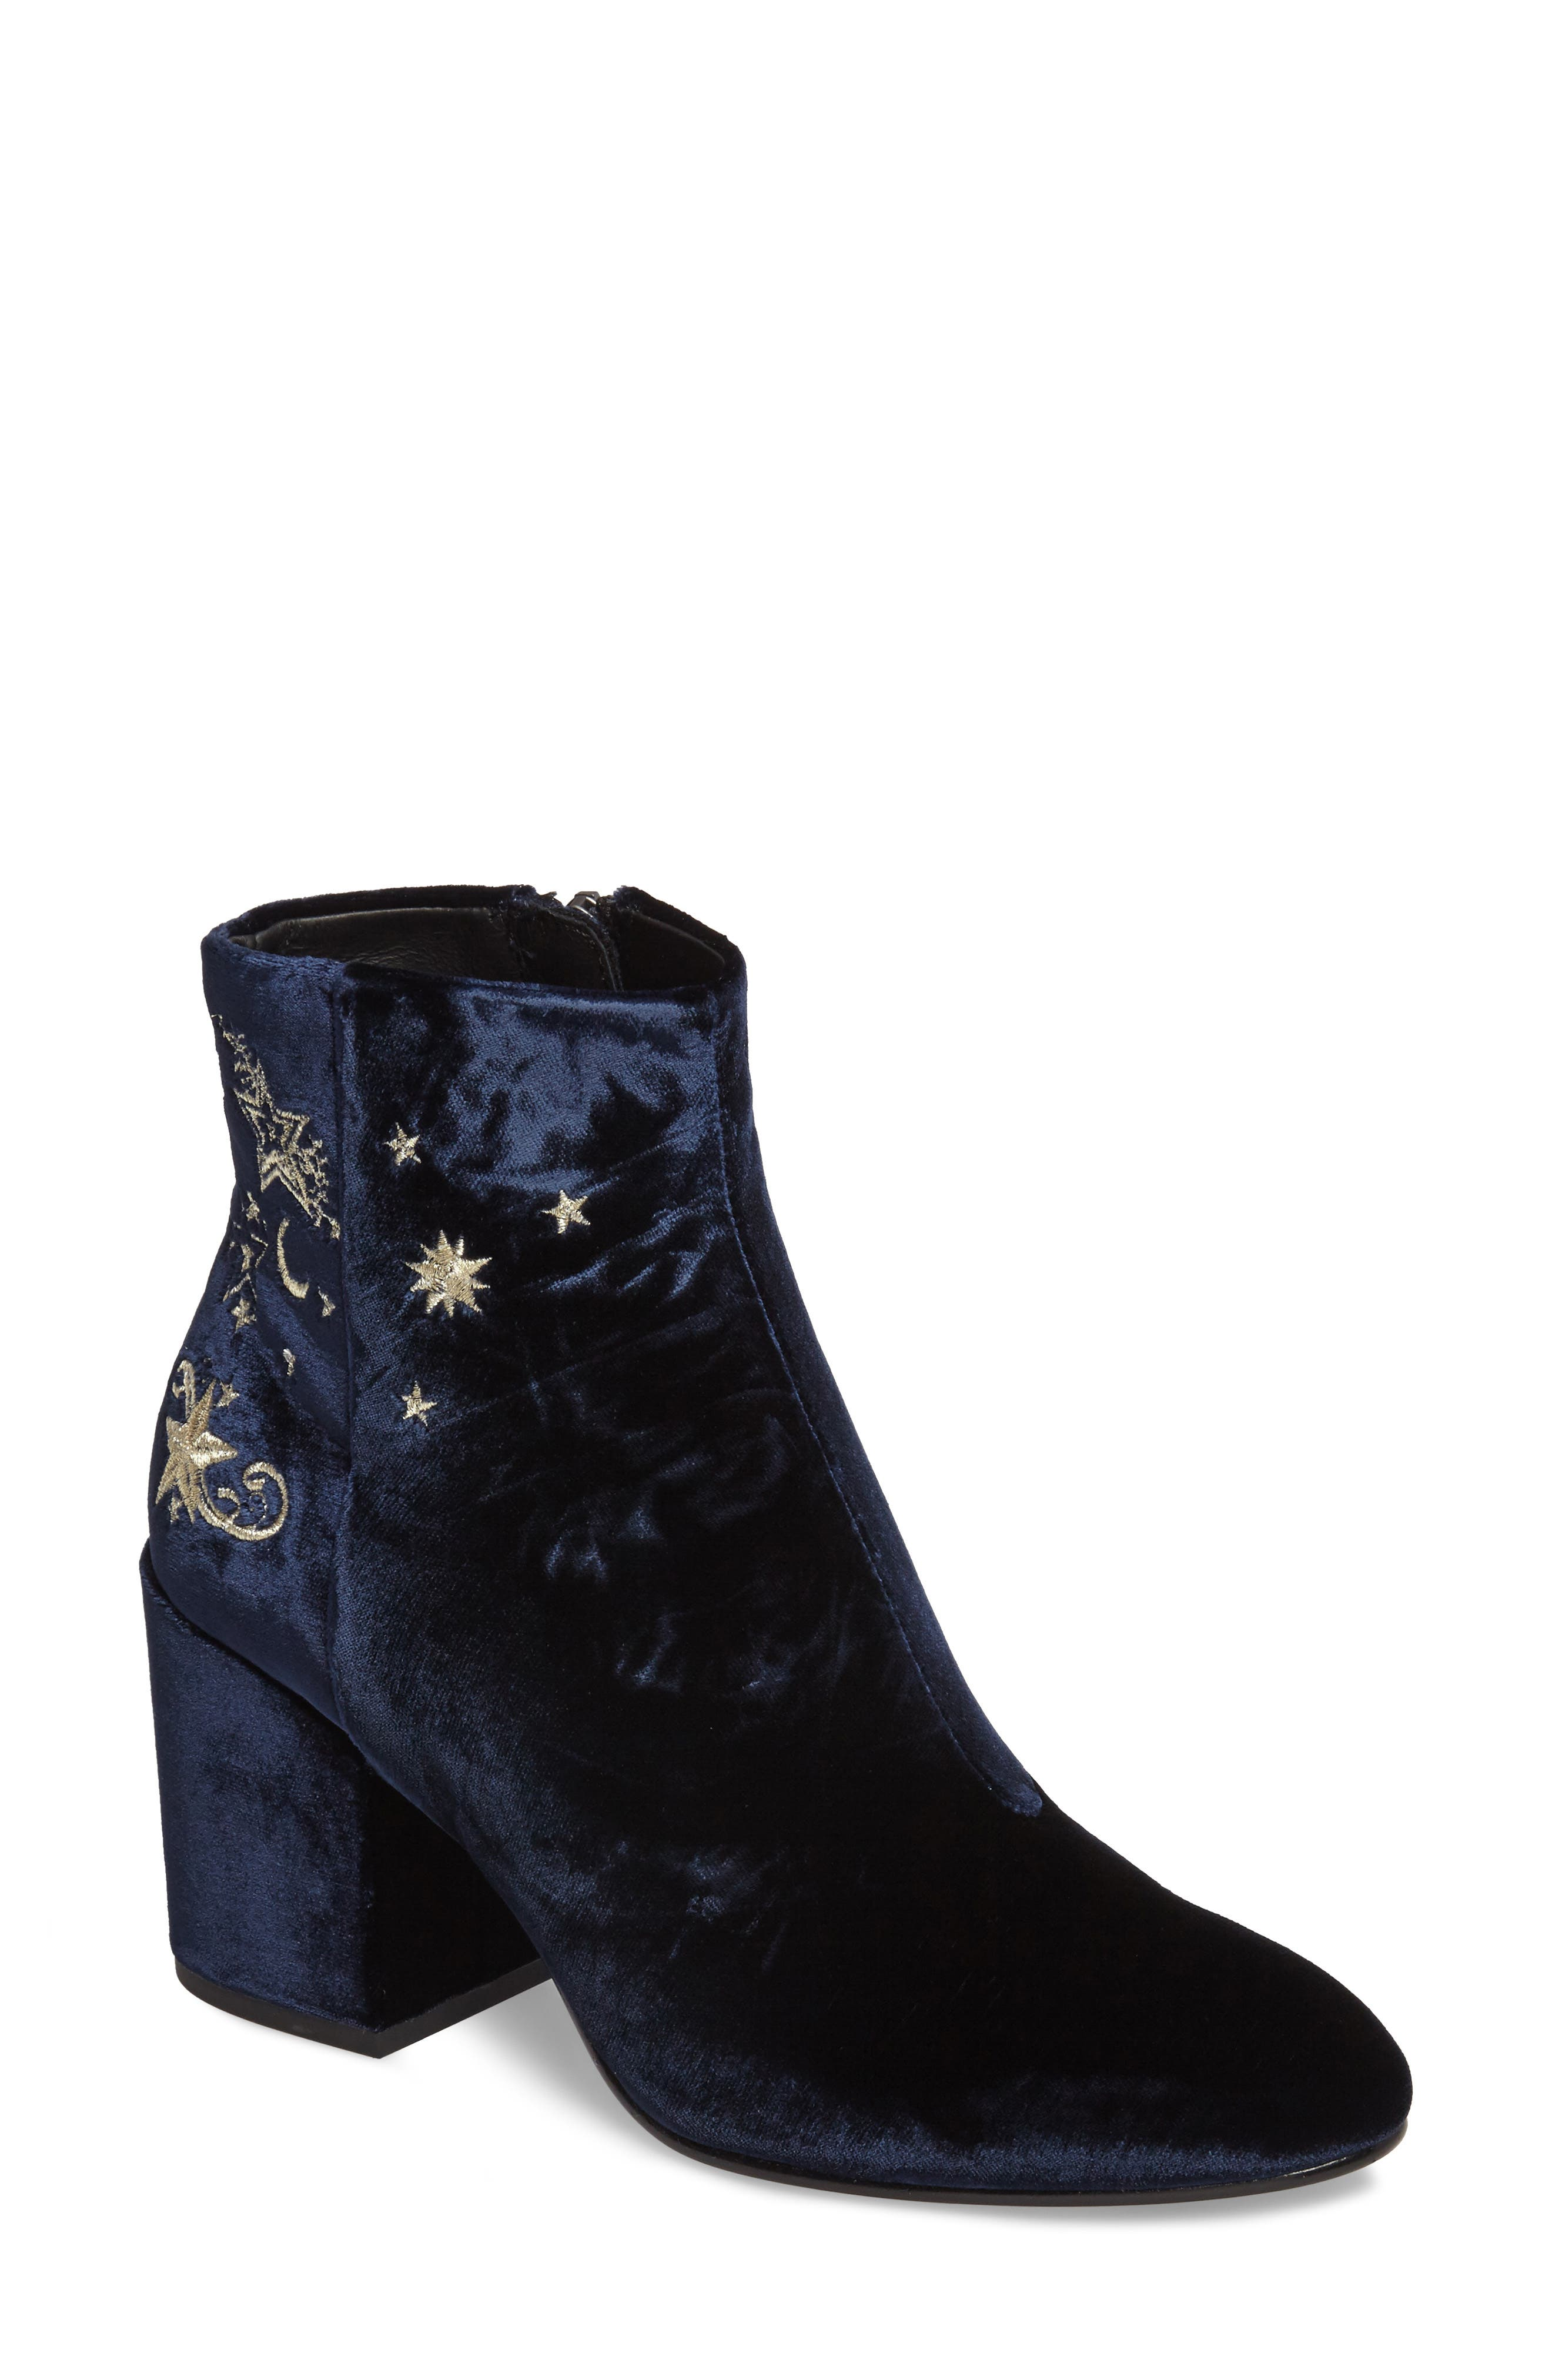 Elixir Embroidered Velvet Bootie,                         Main,                         color, Midnight Fabric